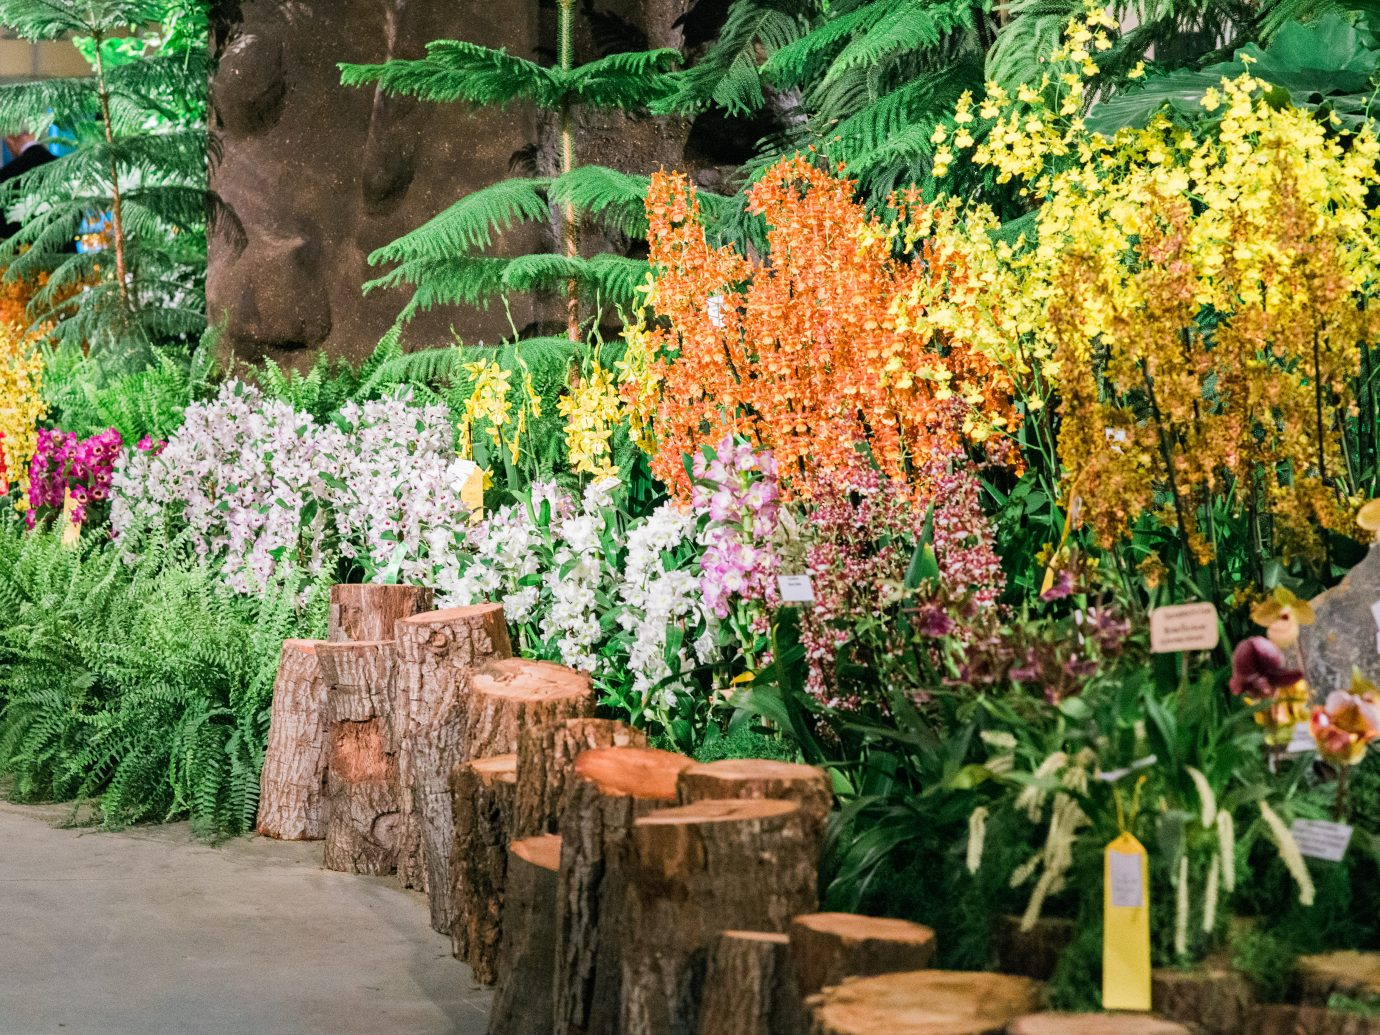 flower display at the International Orchid Show in Santa Barbara